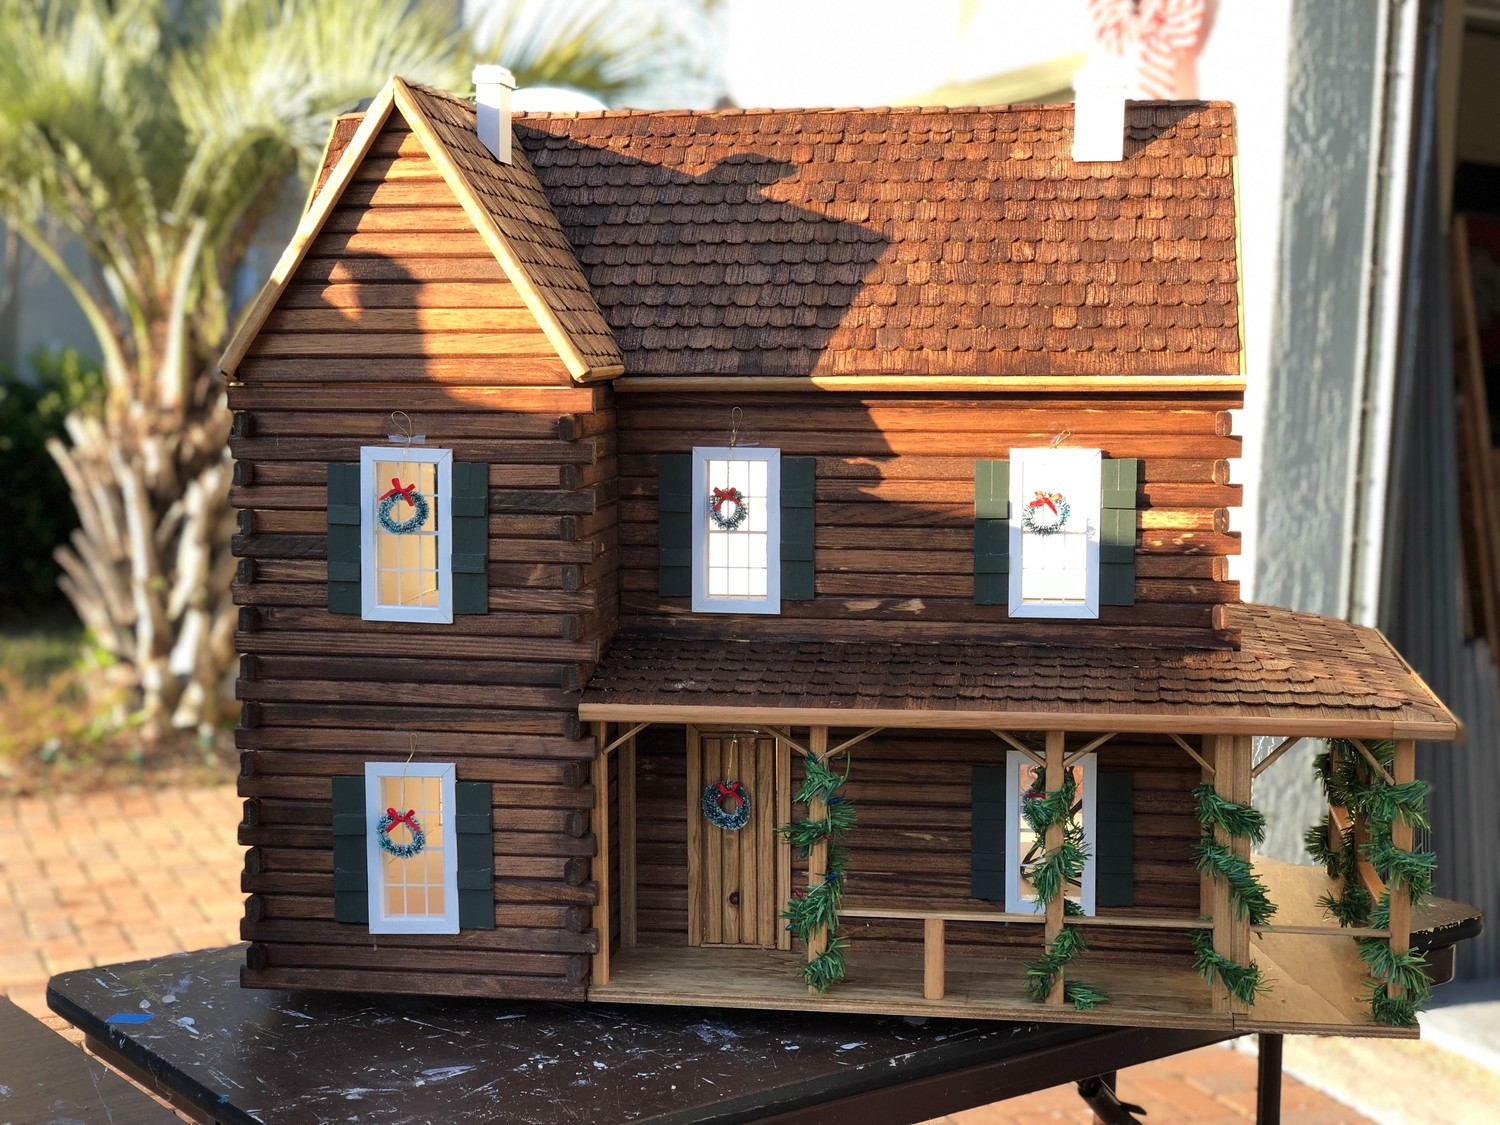 For a festive touch, Hoffman also likes to decorate his doll houses with holiday decorations.